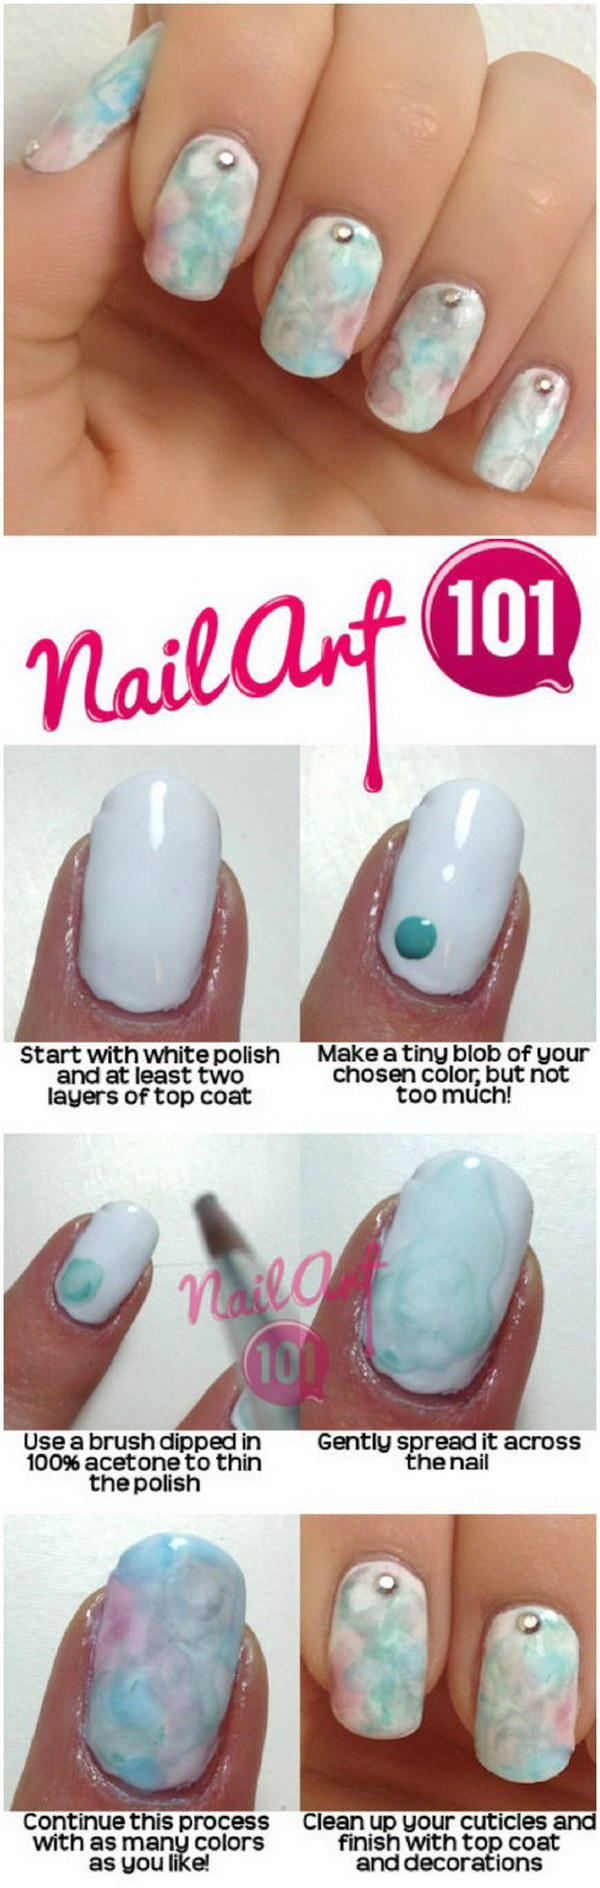 Create the Watercolor Effect on Your Nails.